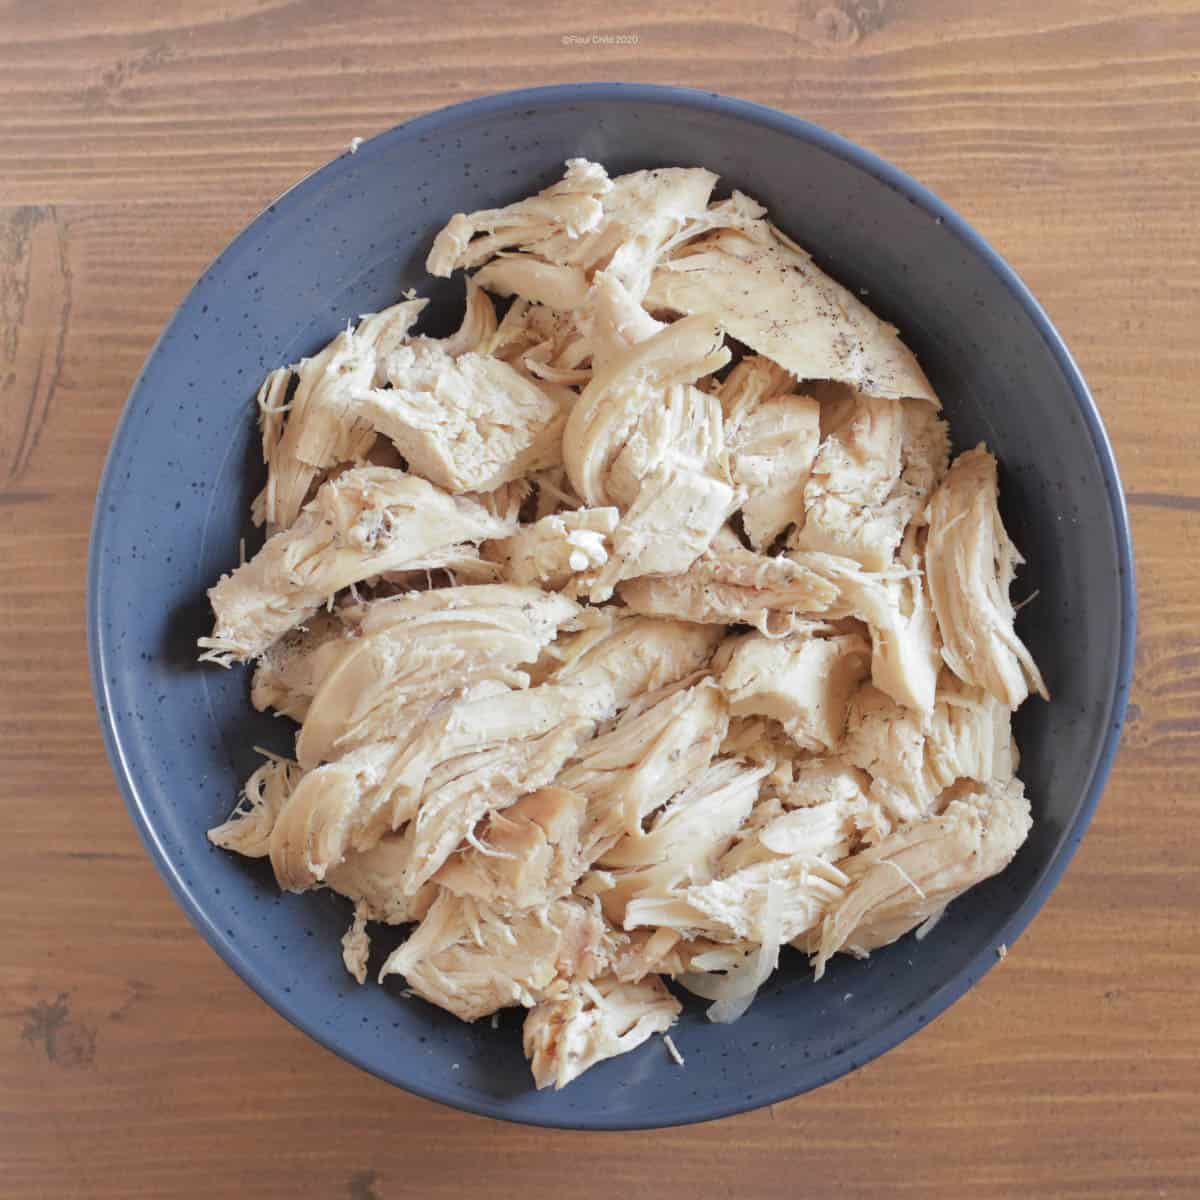 Cooked chicken, cut into serving size bites